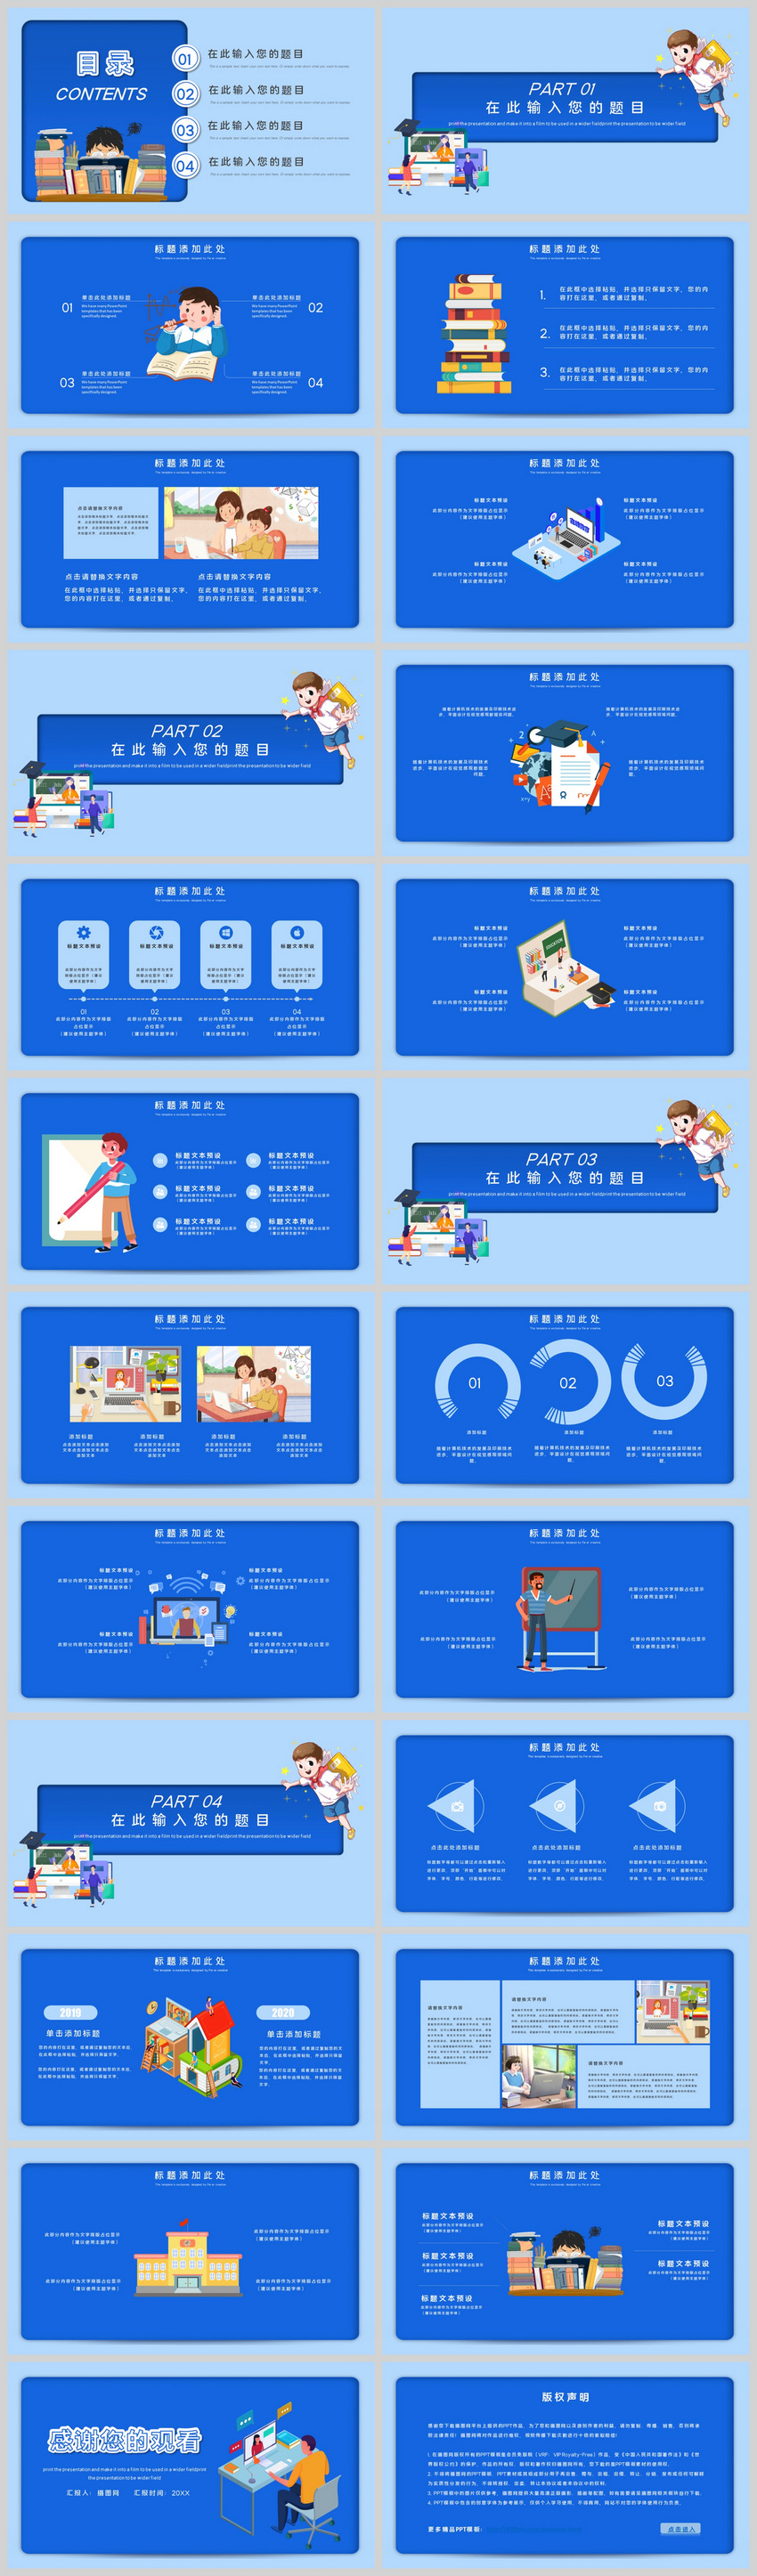 Blue Flat Cartoon Online Education Training Ppt Template Powerpoint Templete Ppt Free Download 401682273 Lovepik Com